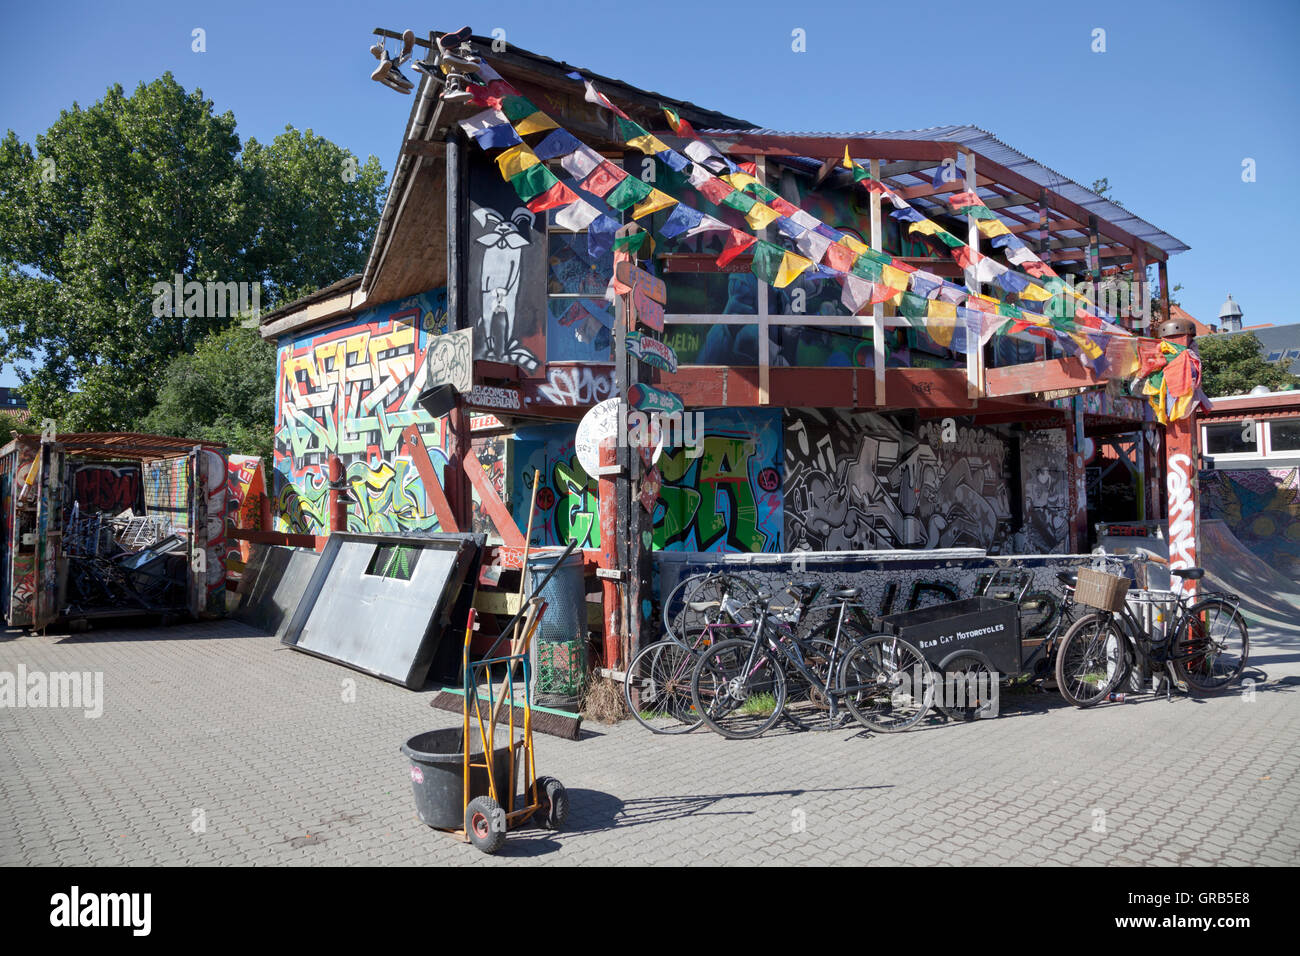 Wonderland Alis skatepark in freetown Christiania, Copenhagen, Denmark. - Stock Image